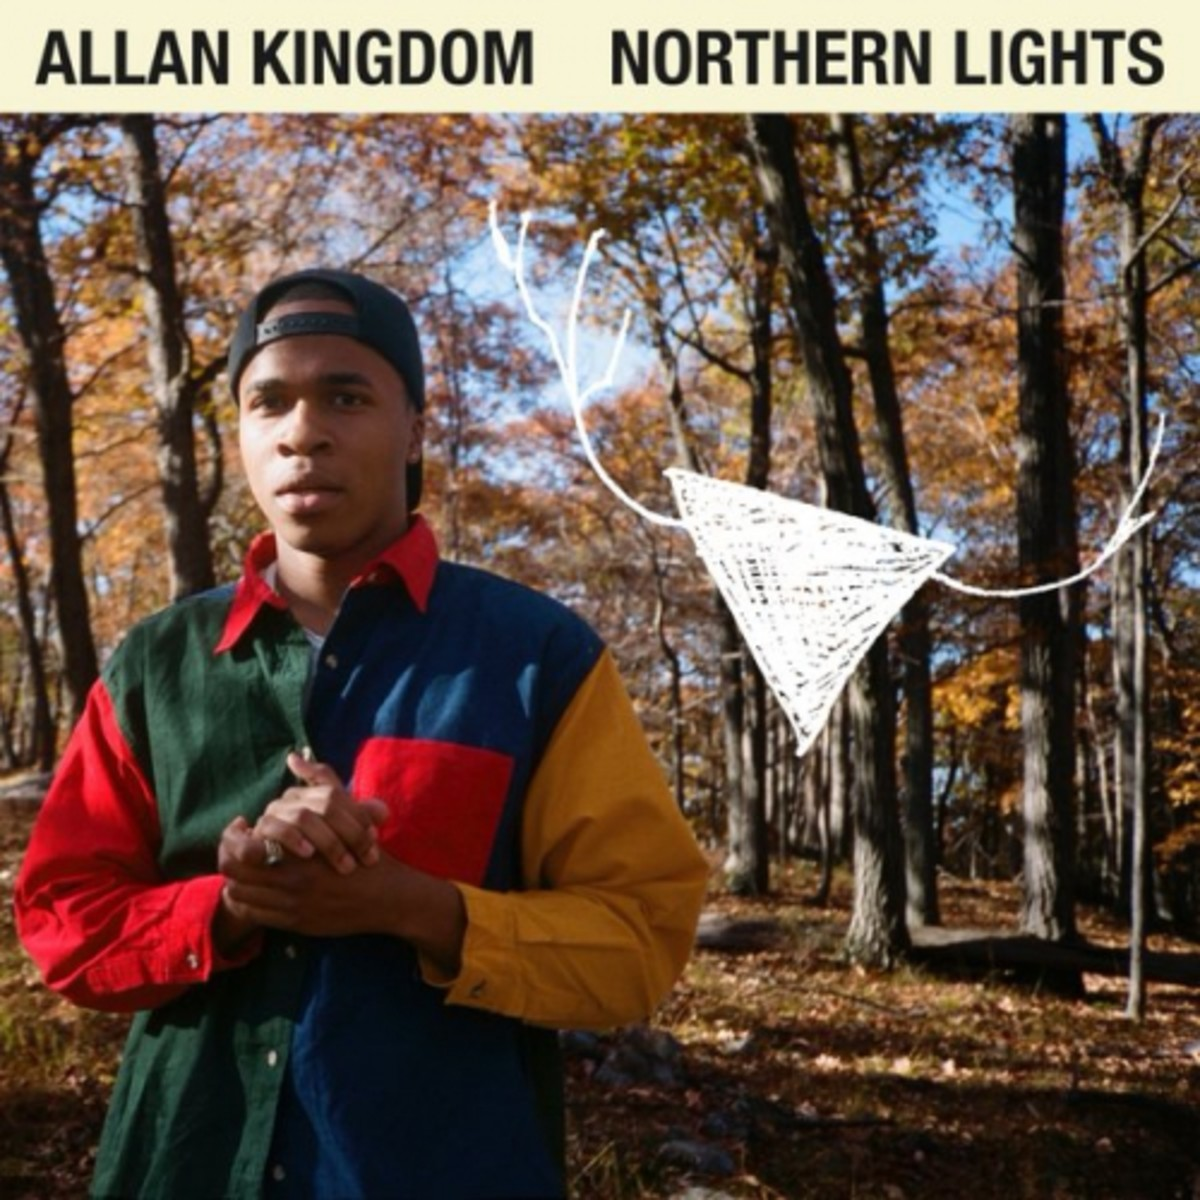 allan-kingdom-northern-lights.jpg